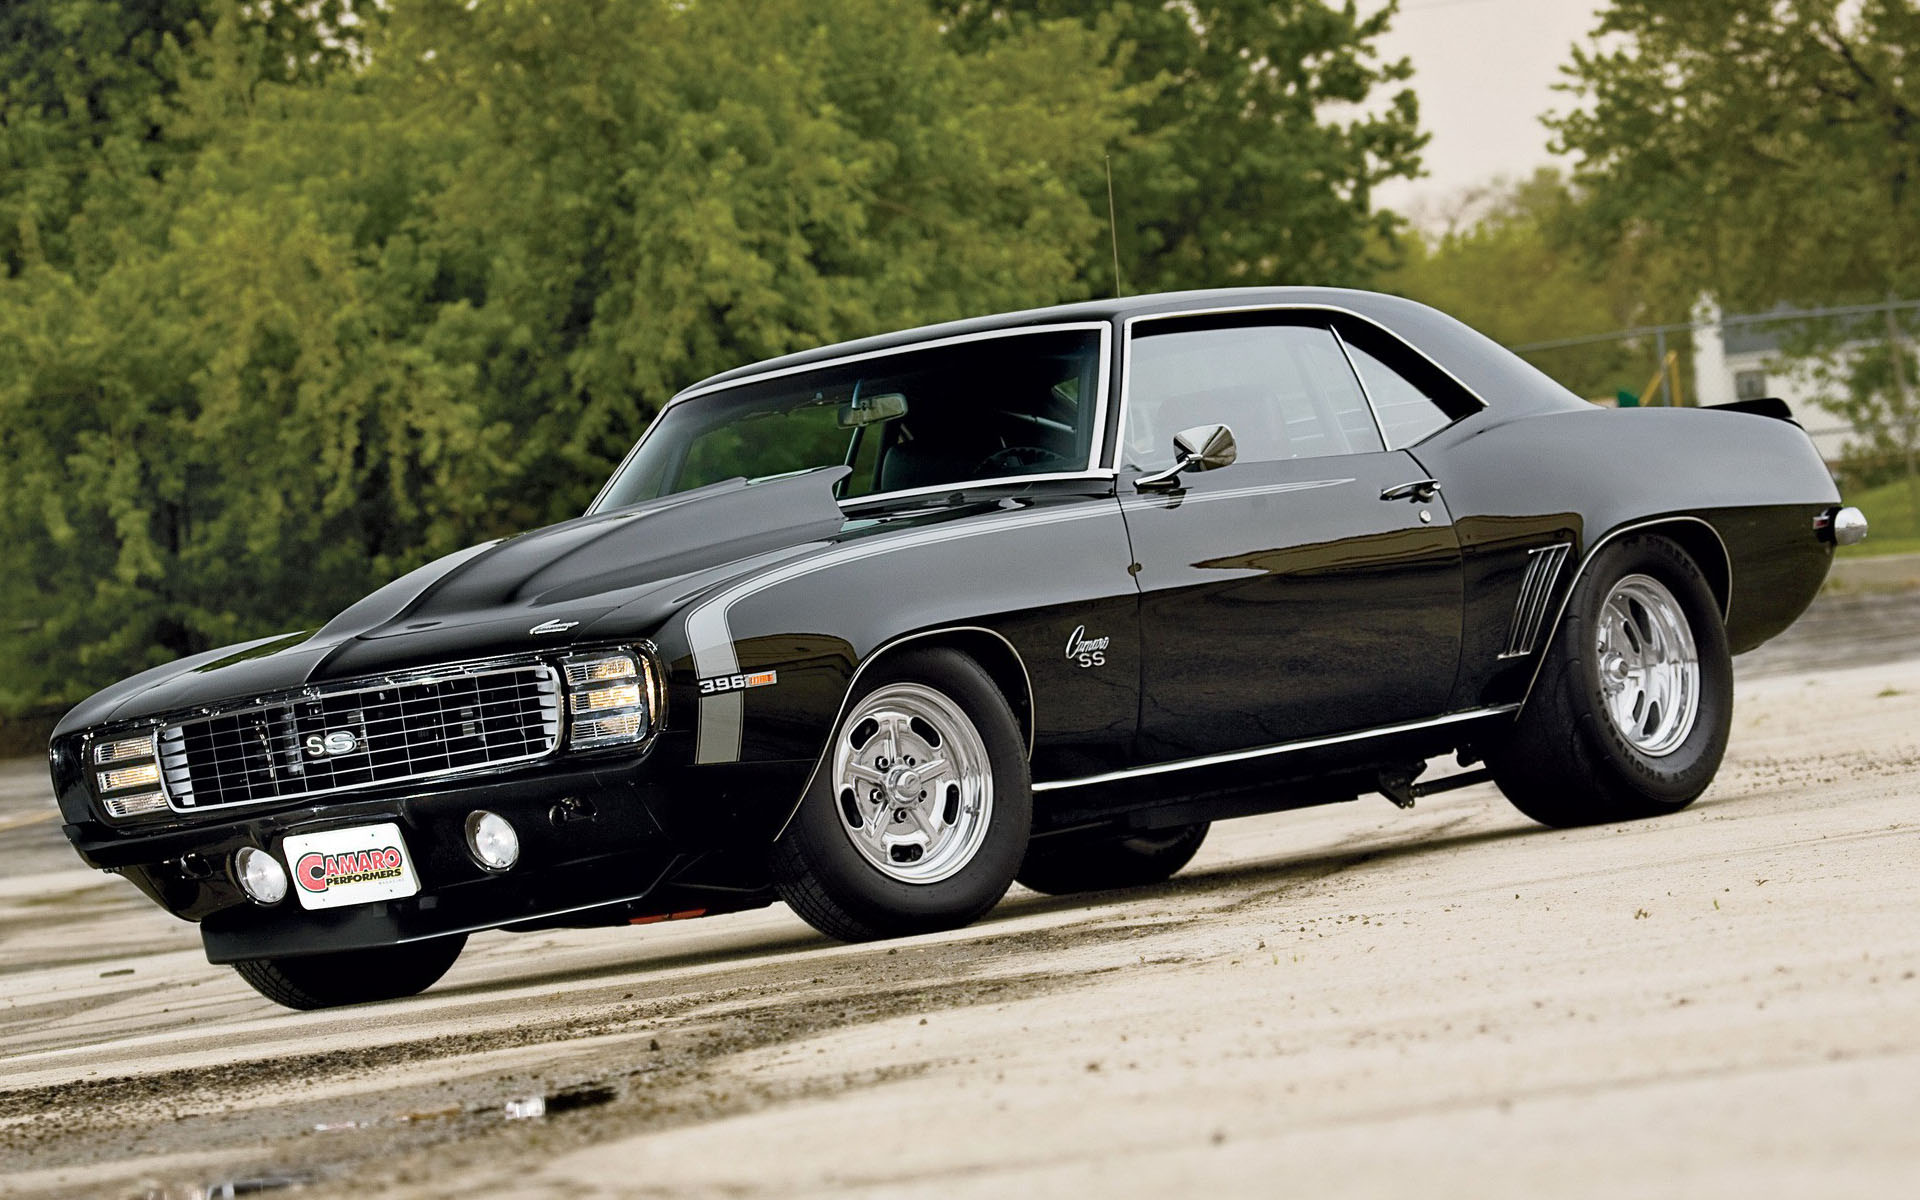 Car of the day – 1969 Custom Chevrolet Camaro SS 396 6.5-liter 1920×1200 HD